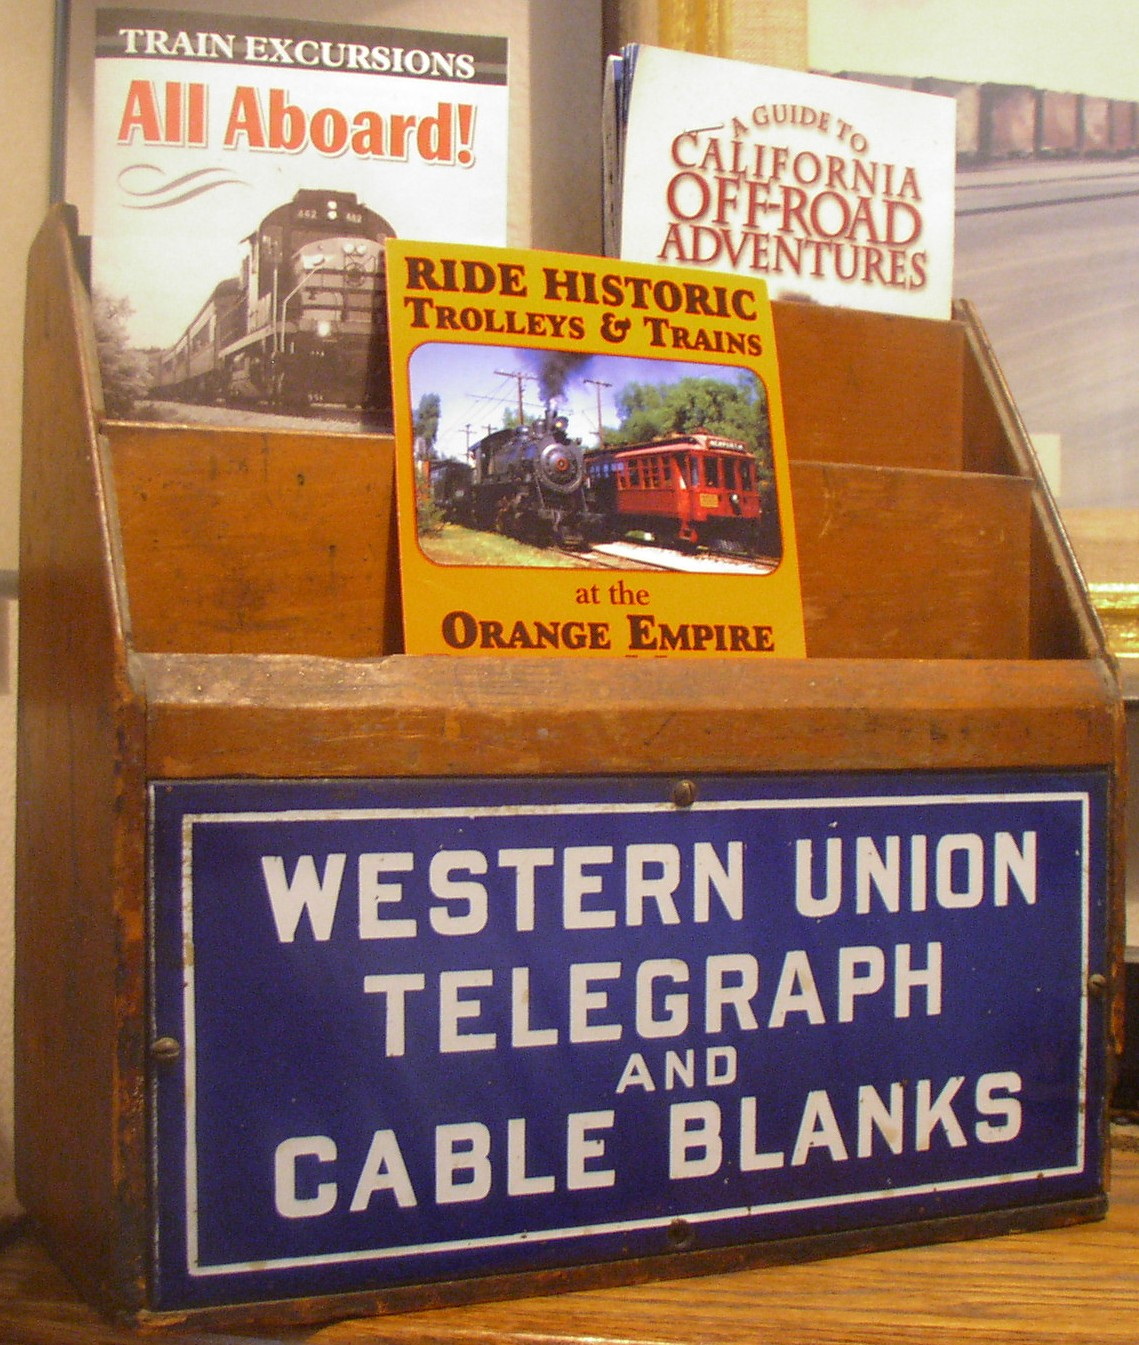 Western Union Telegraph Wood Forms Box with enamel sign